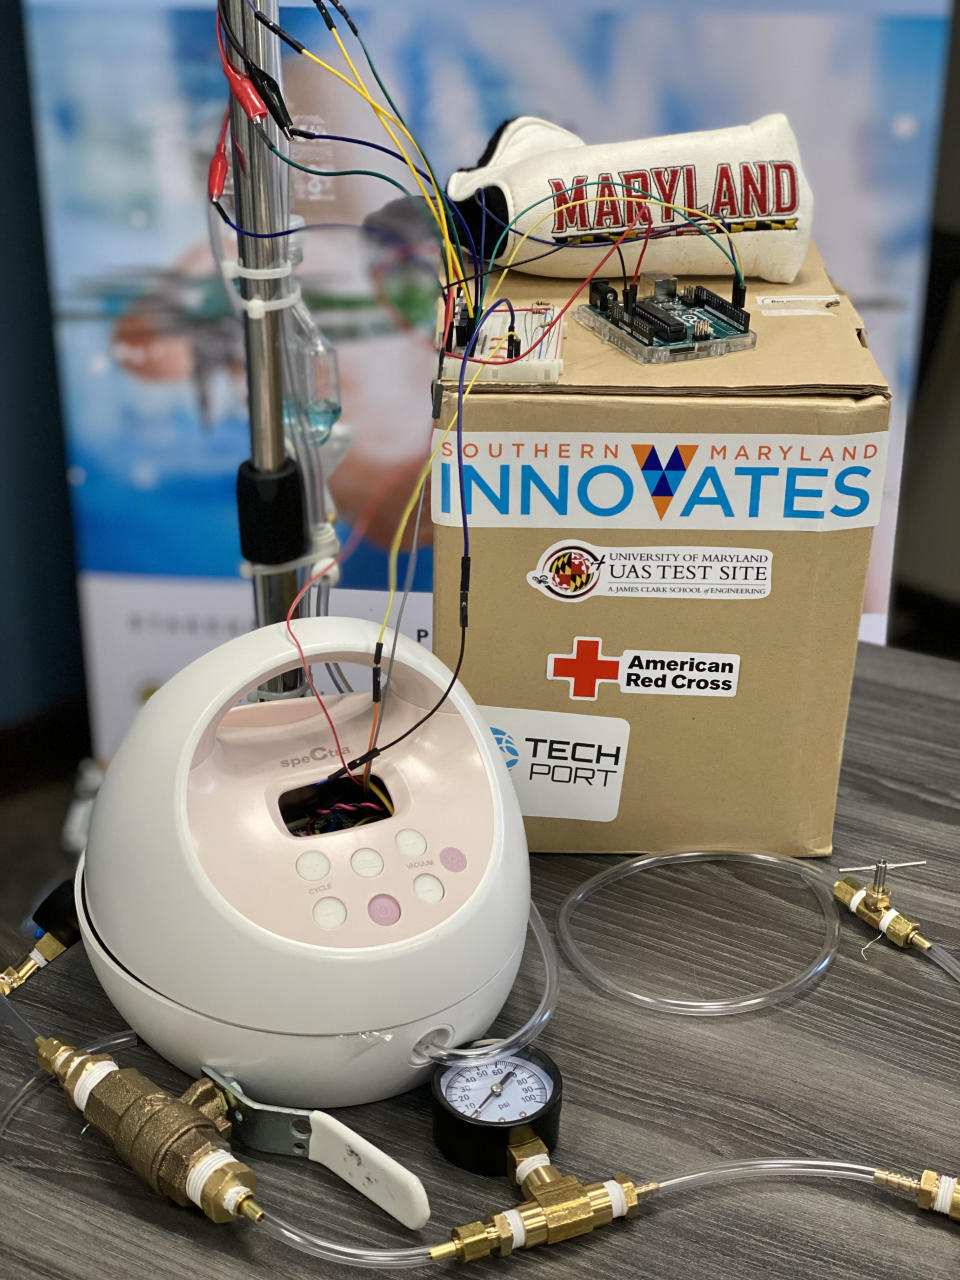 Maryland engineers hope to convert a breast pump into a ventilator to treat COVID-19 patients. (Photo: Courtesy of Rachel LaBatt)